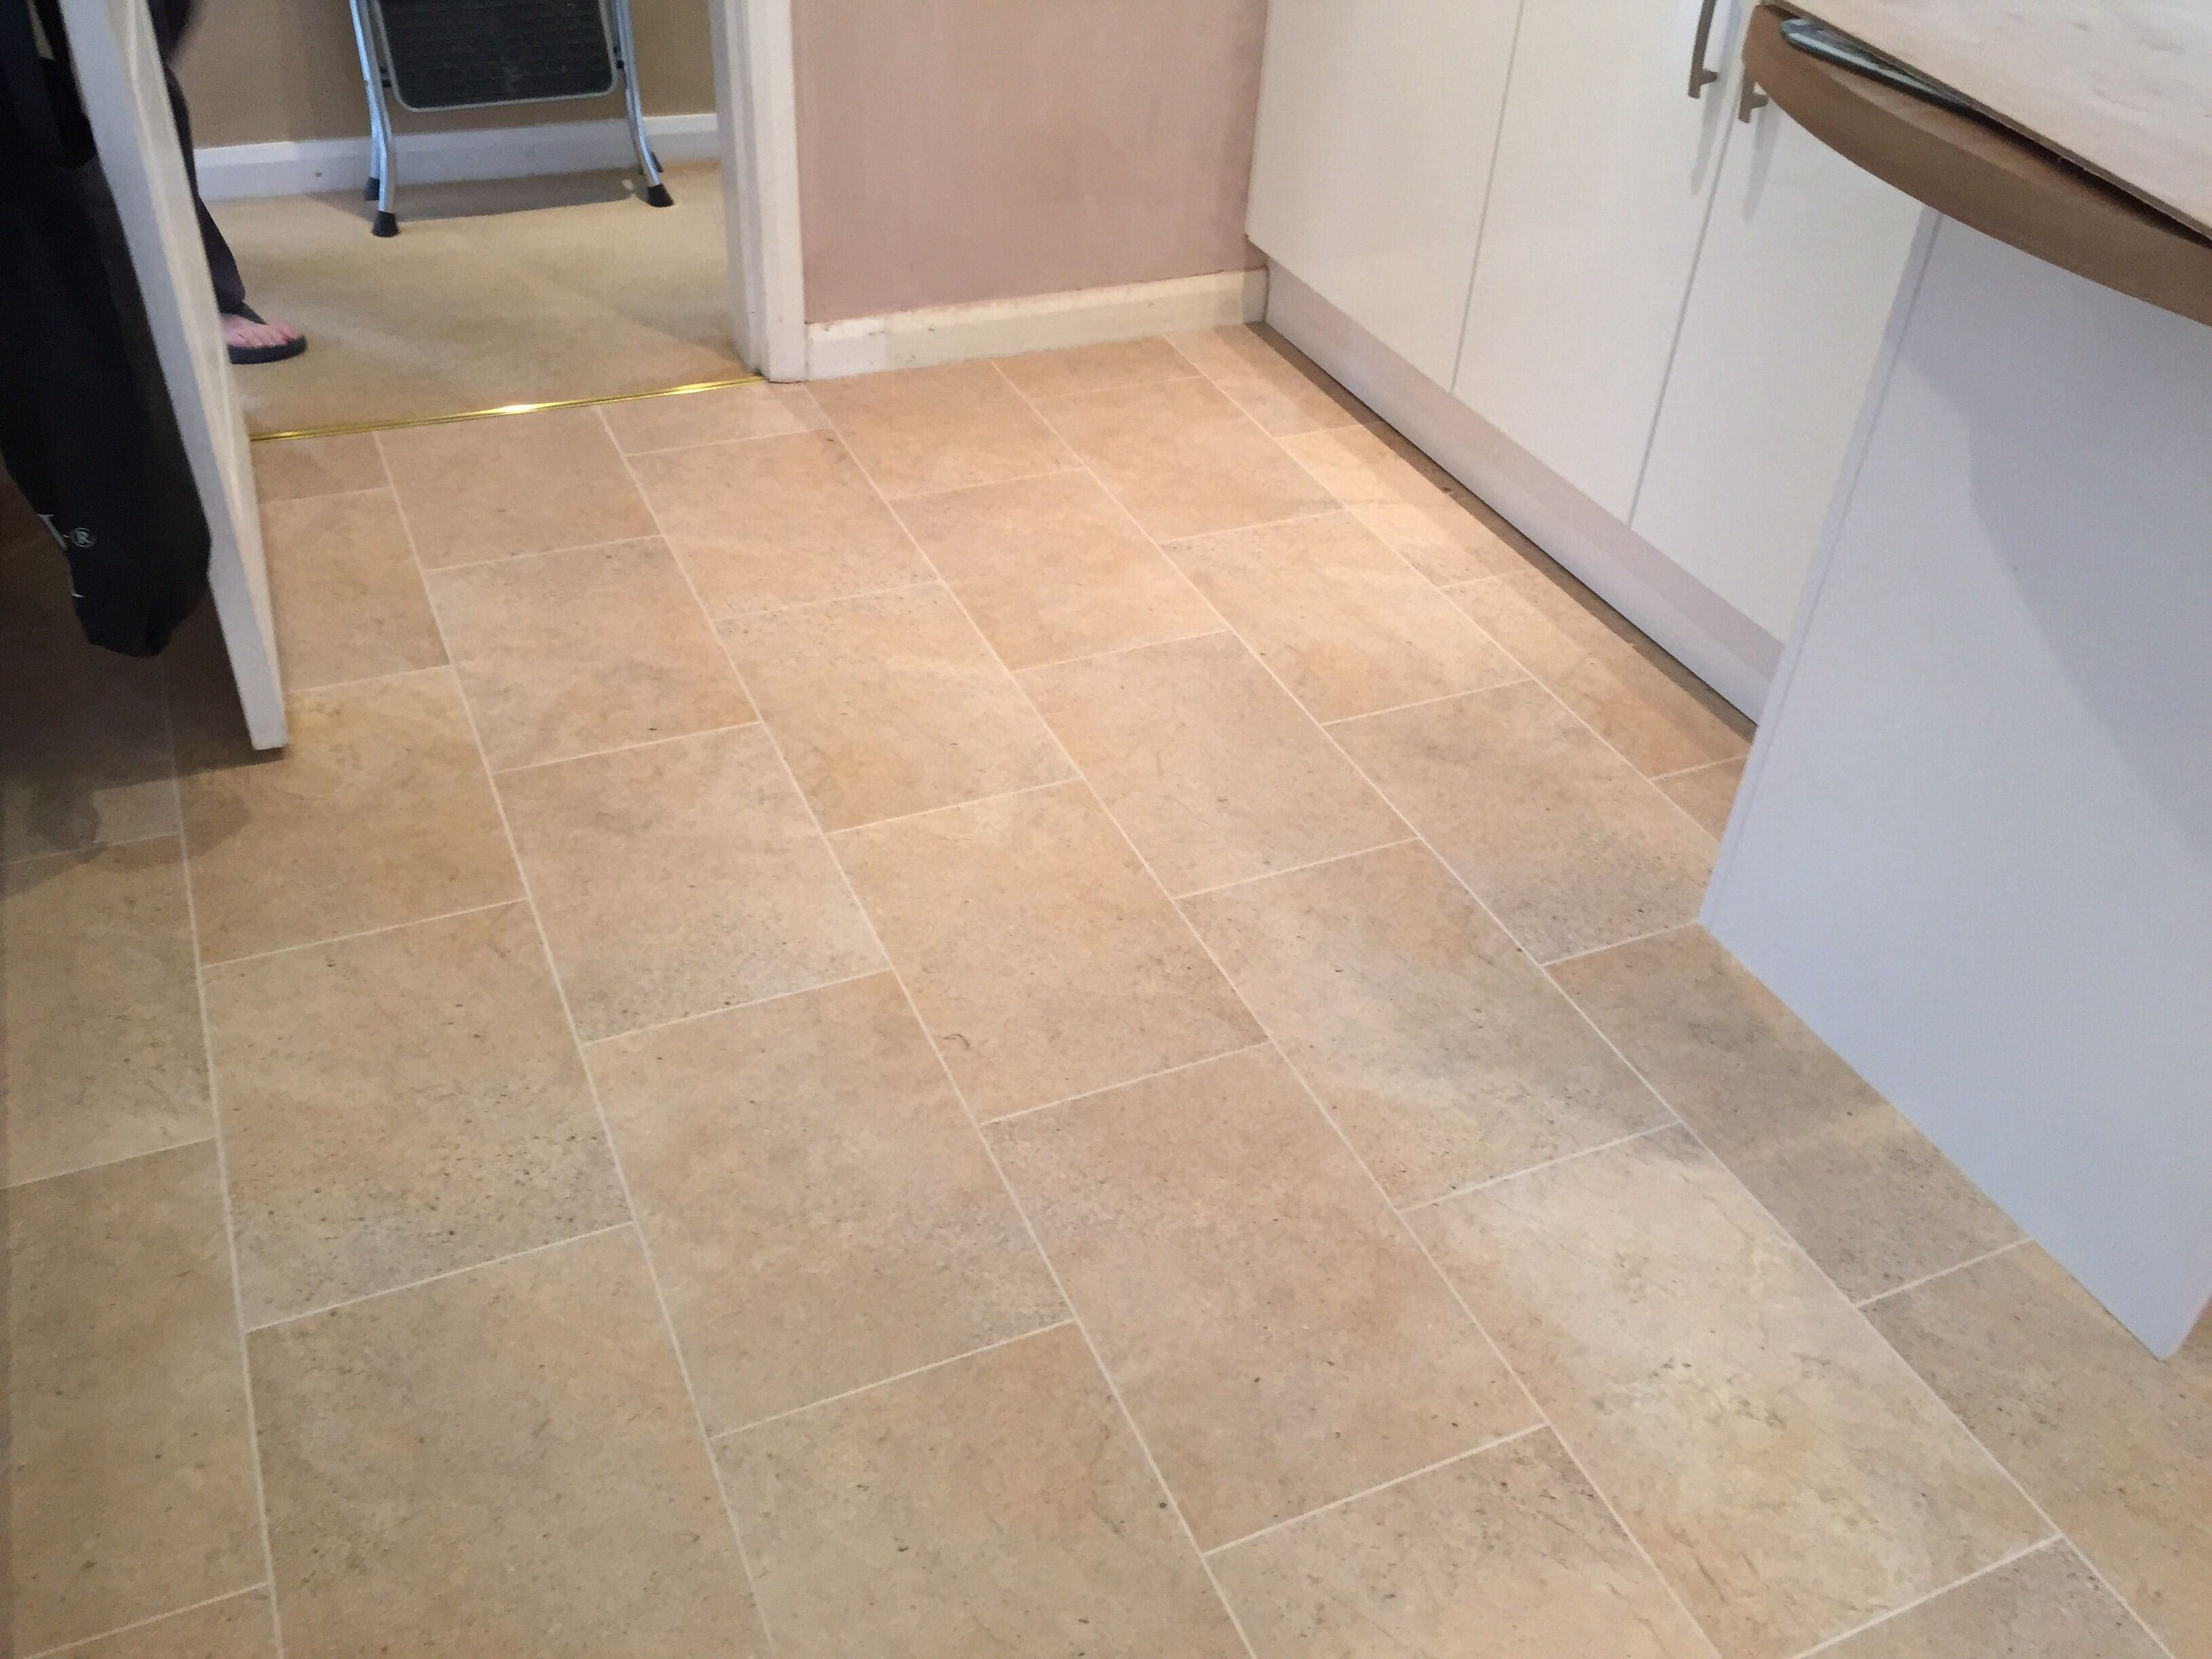 Kitchen Tiles York Karndean Knight Tile York Stone Supplied And Fitted By